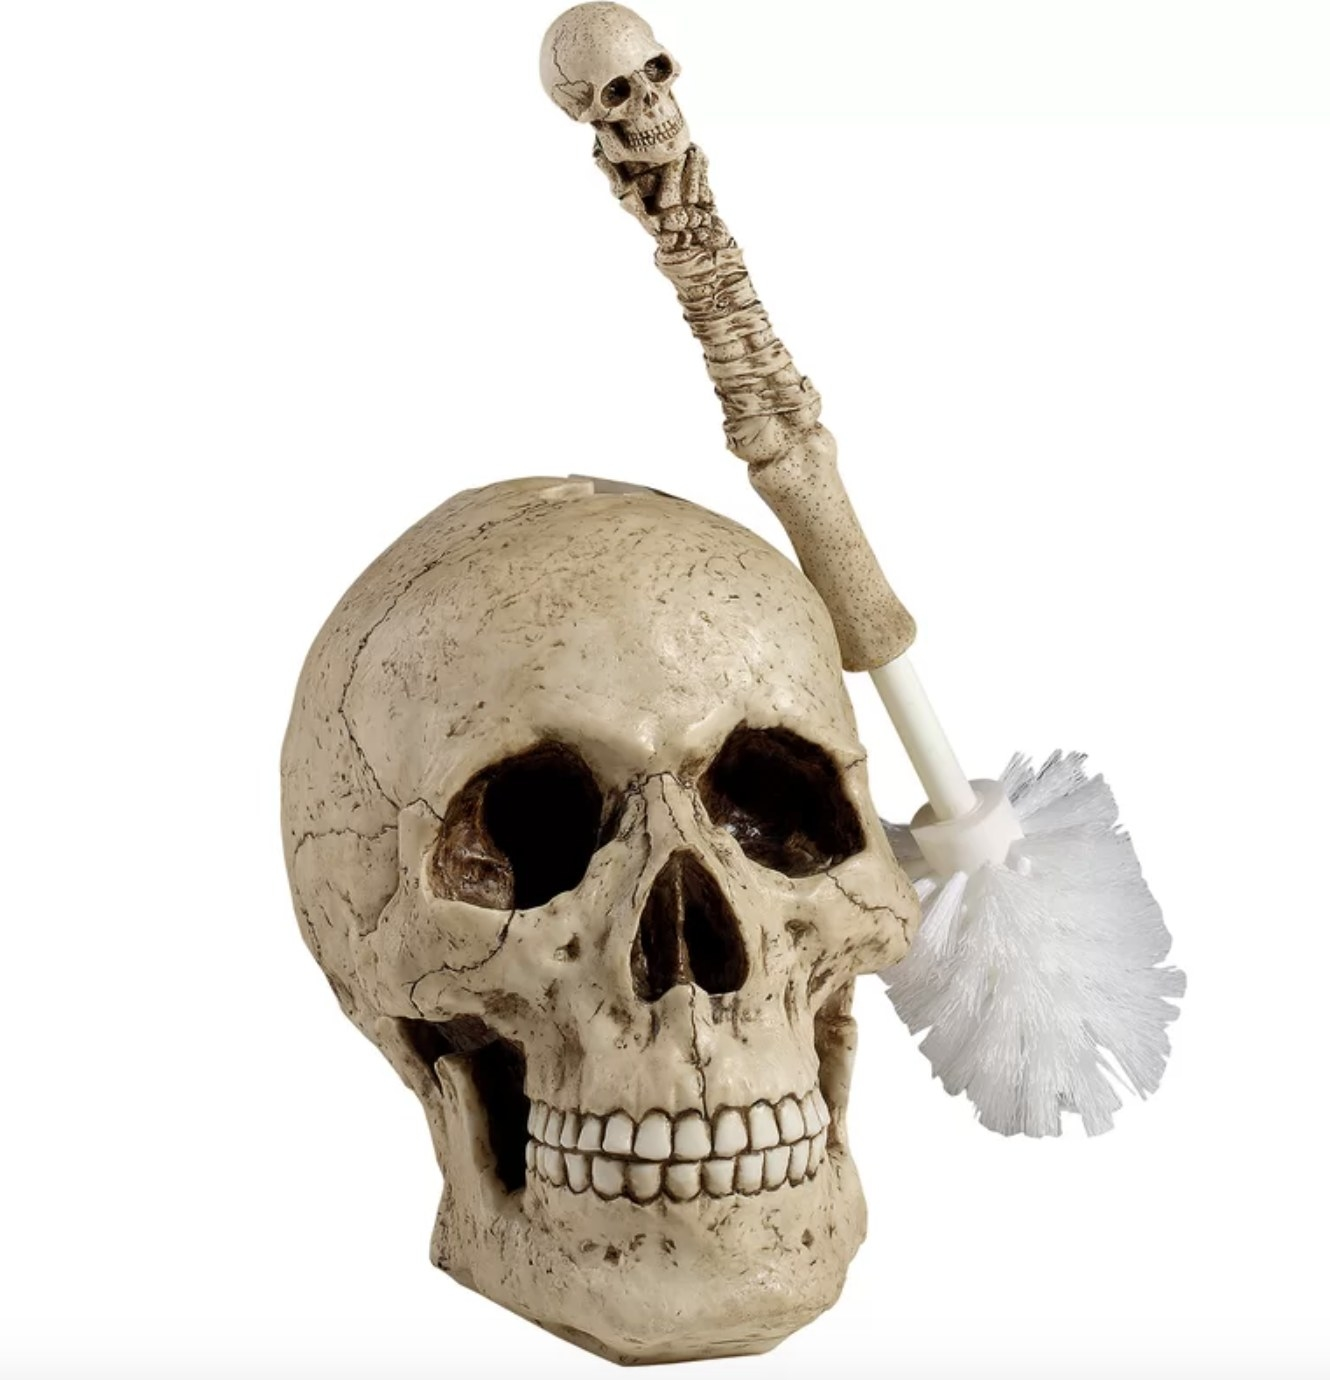 The large tan skull head has a femur shaped toilet brush with a small skull on top